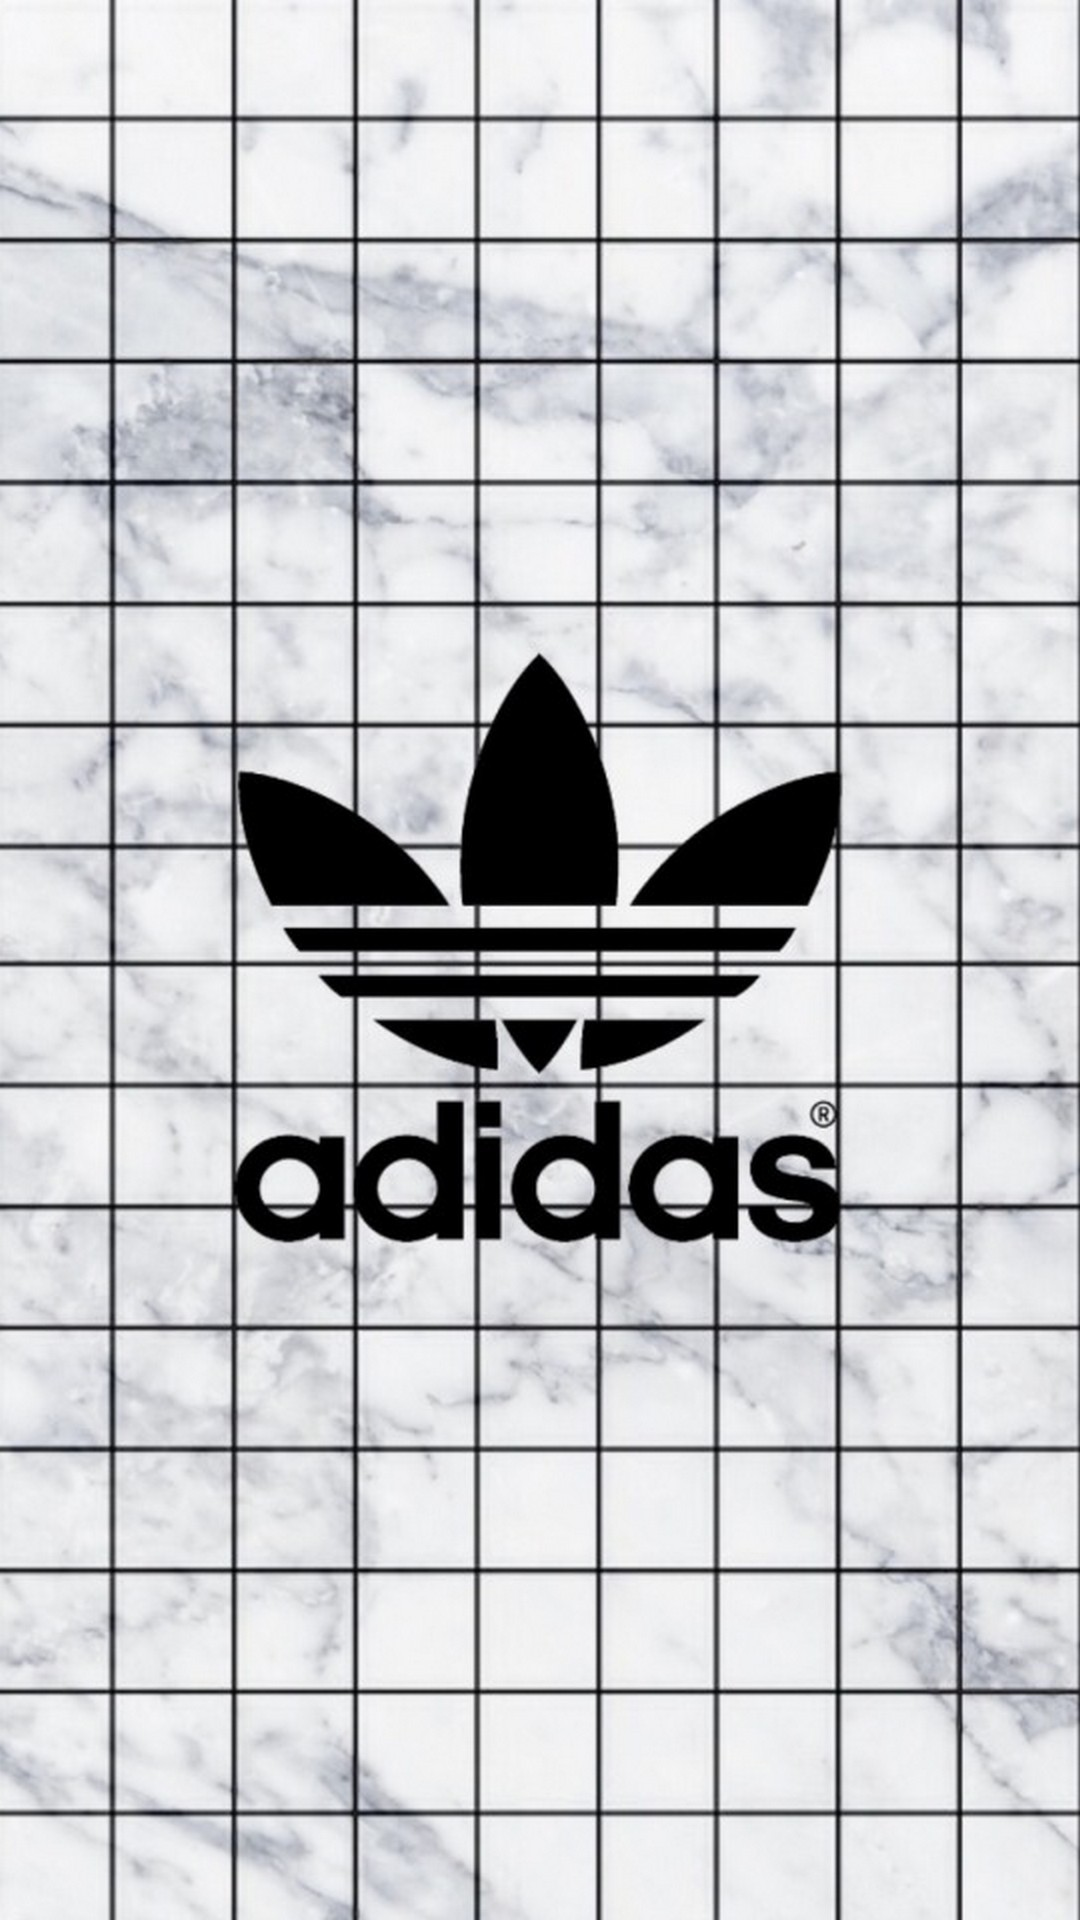 Adidas Logo Android Wallpaper